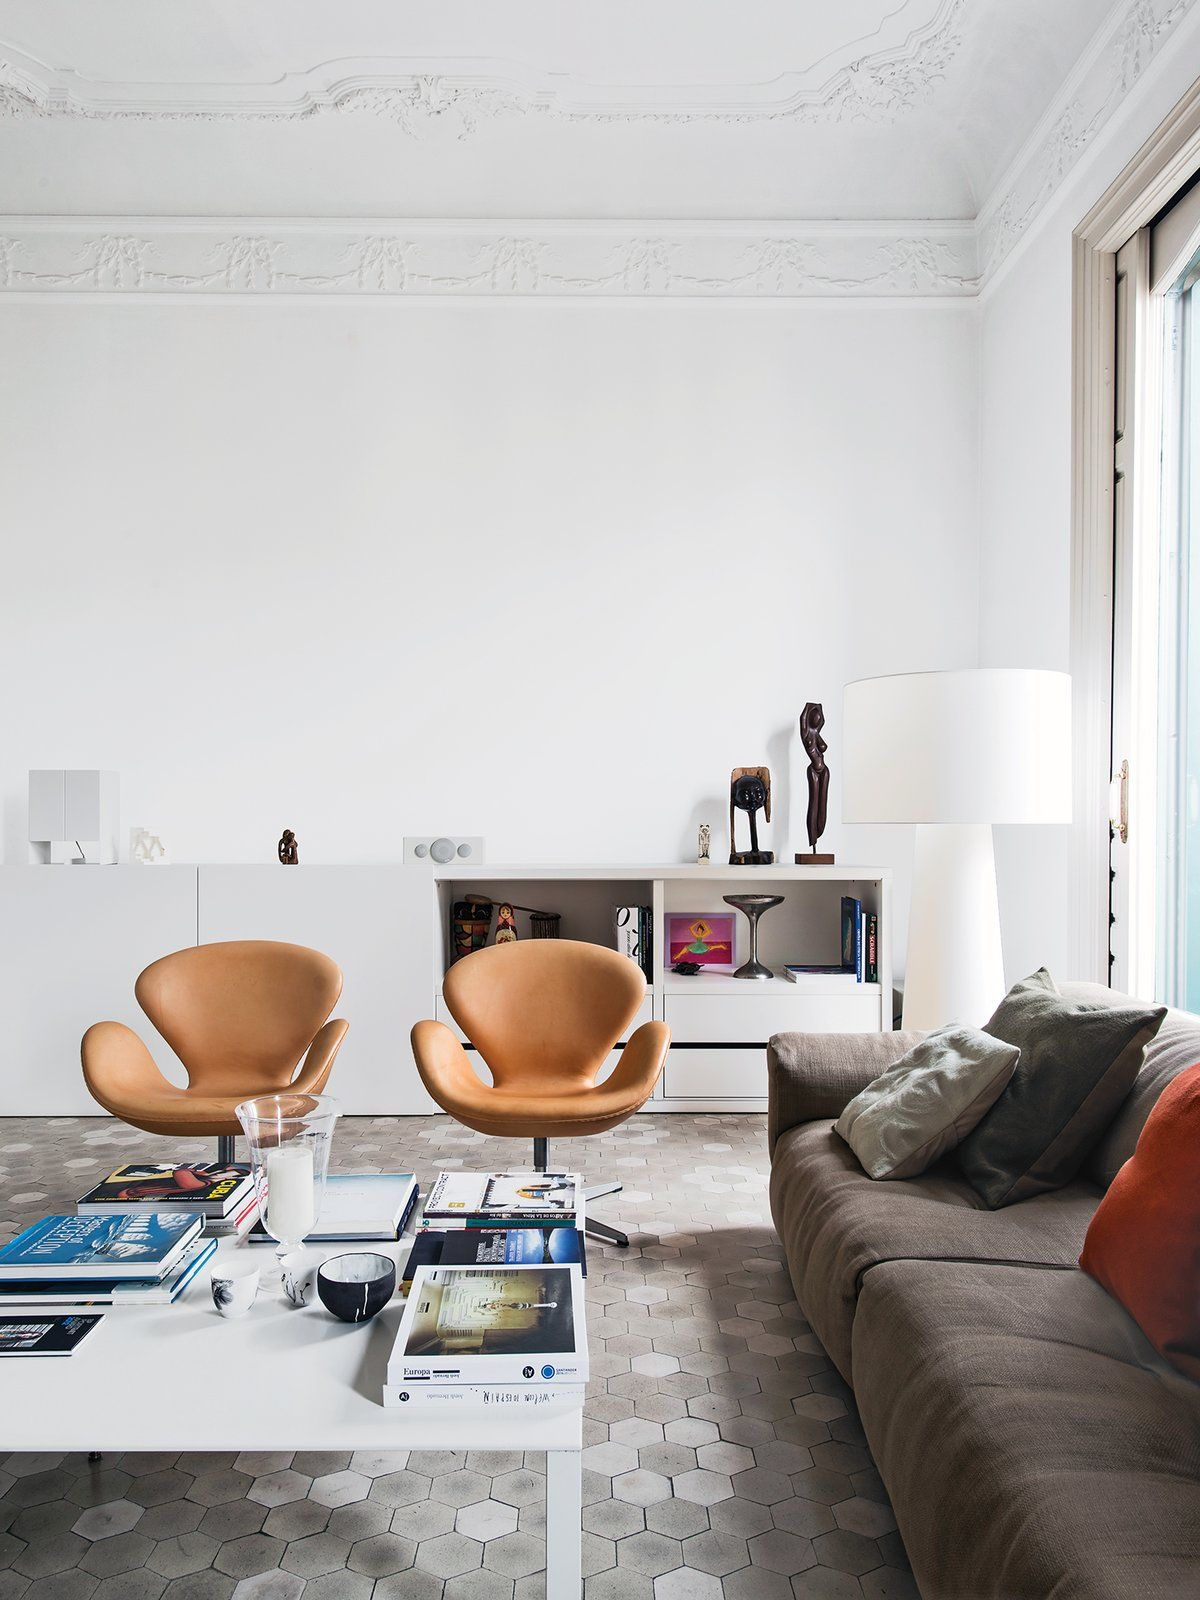 All These Rooms Have One Unusual Thing in Common | Swan chair, Arne ...